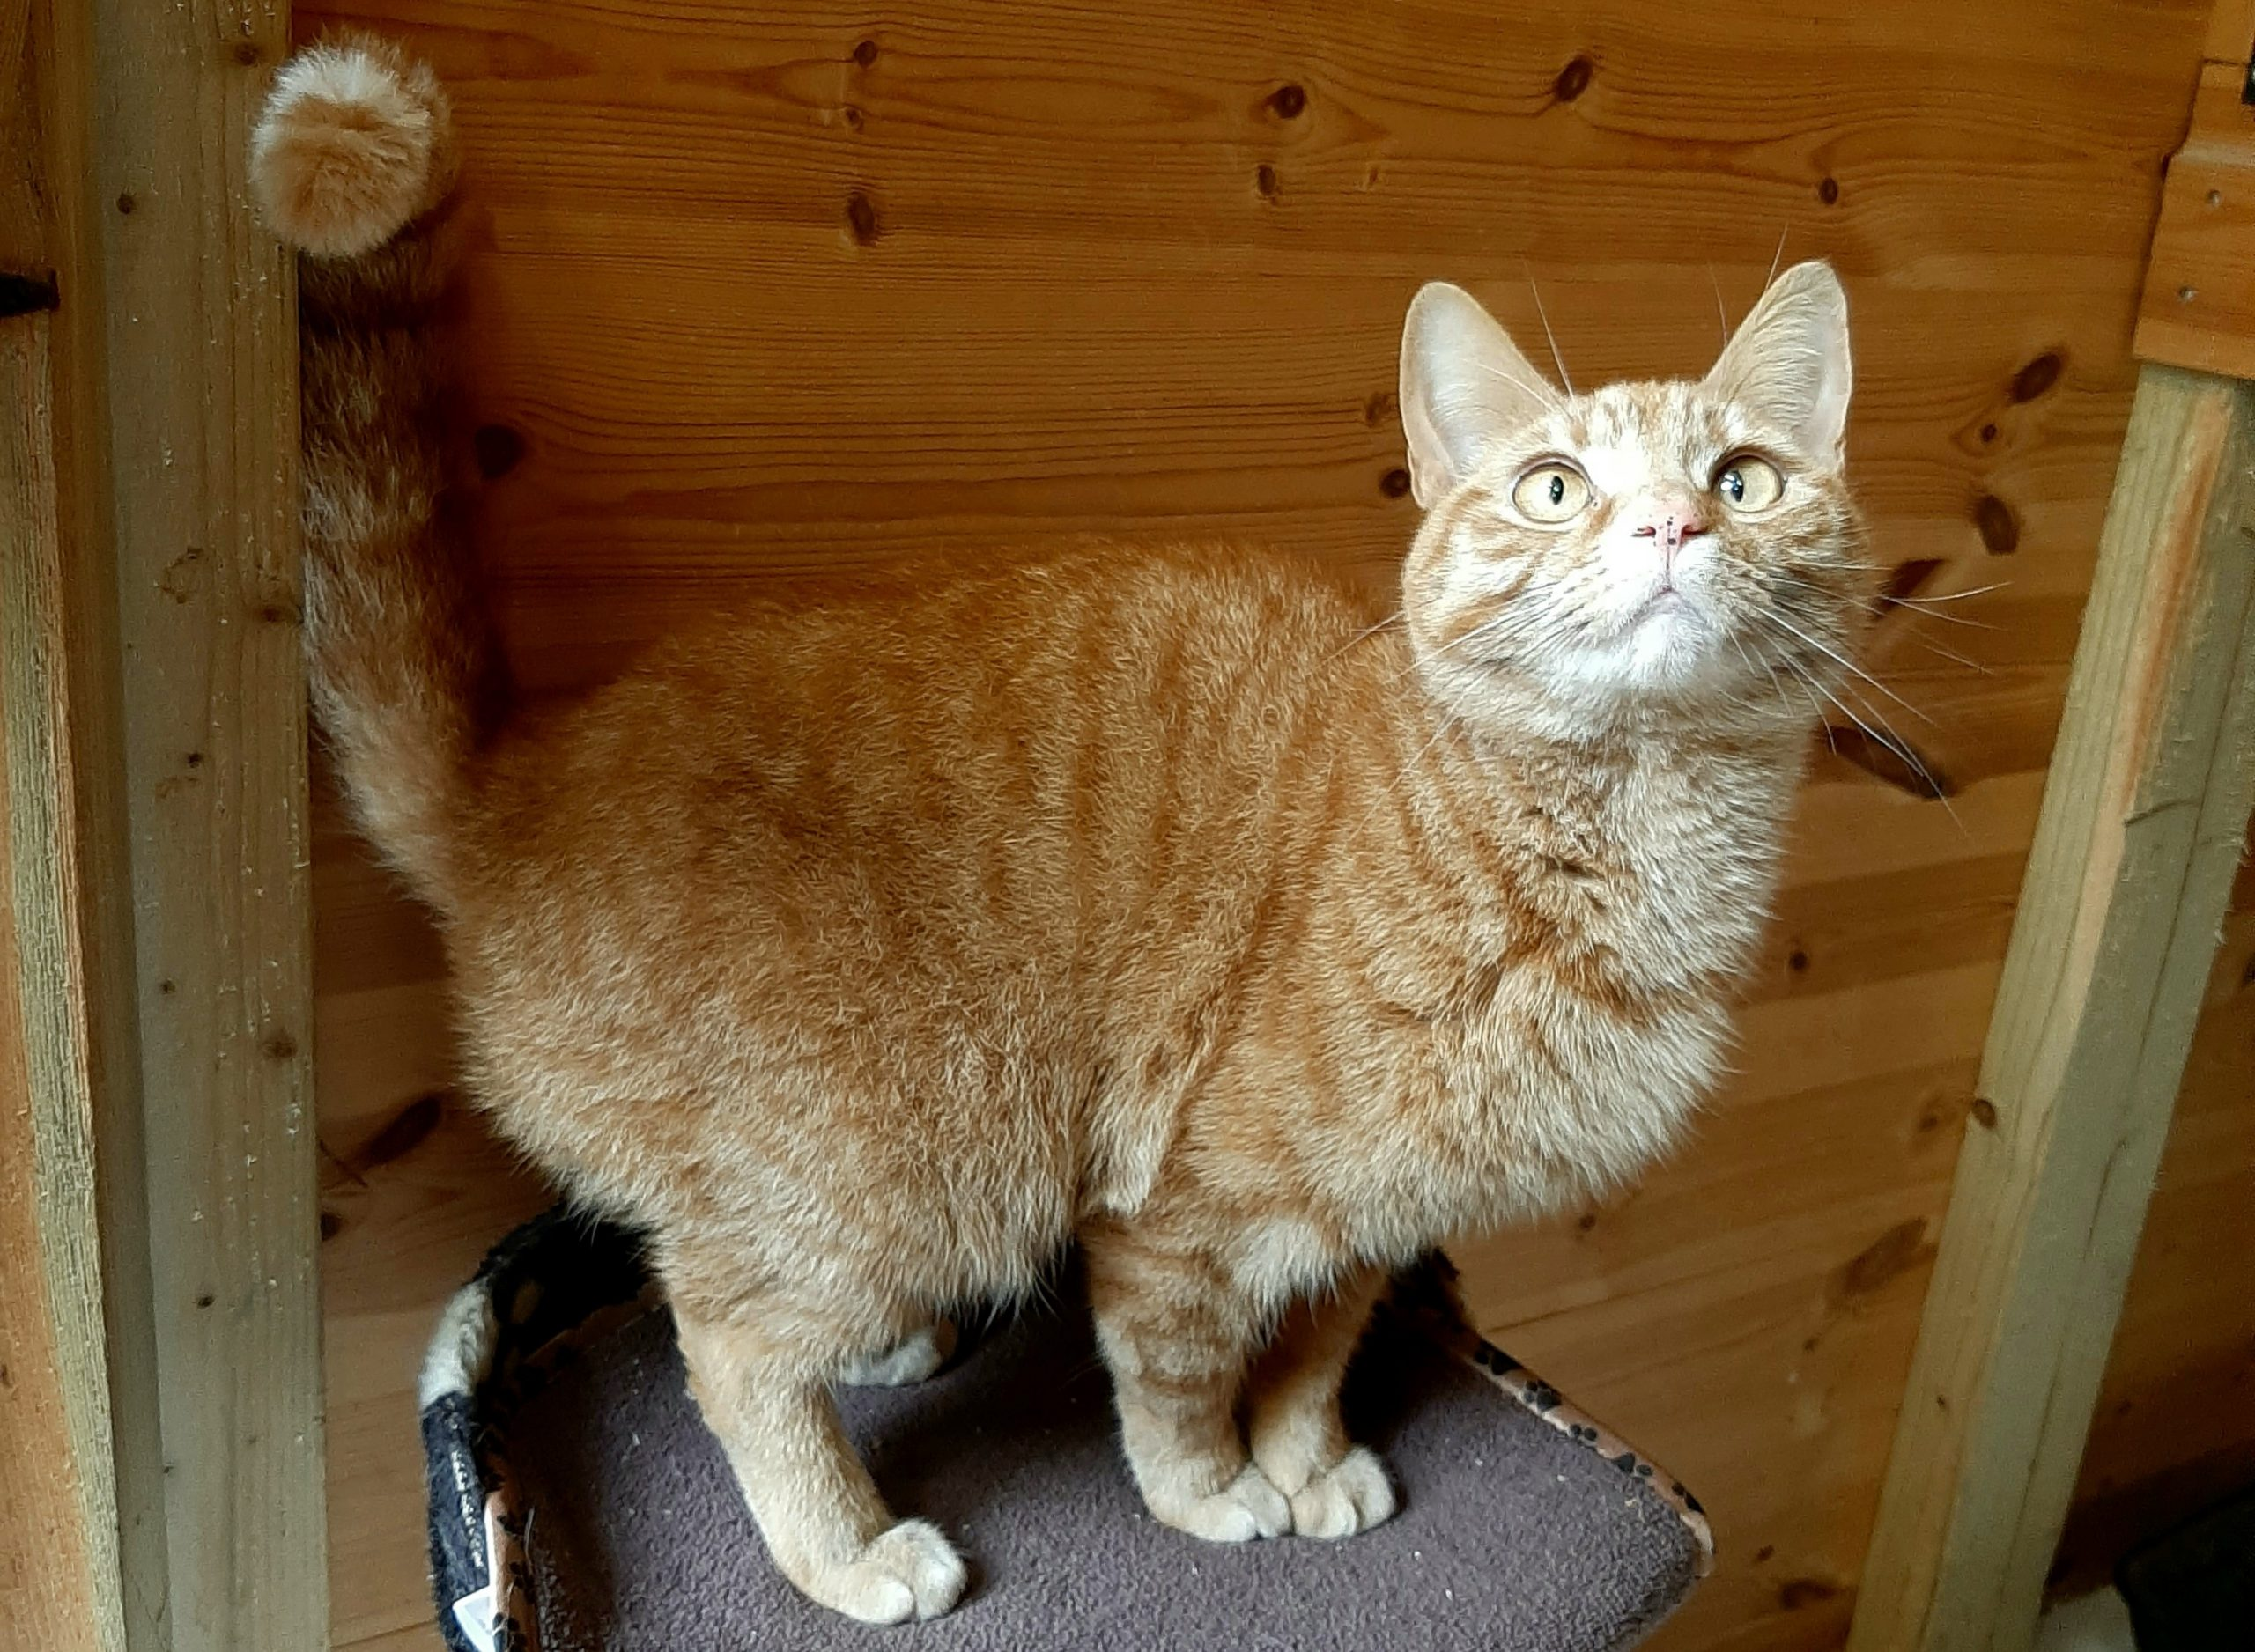 Marley (to be homed with Zizzie)